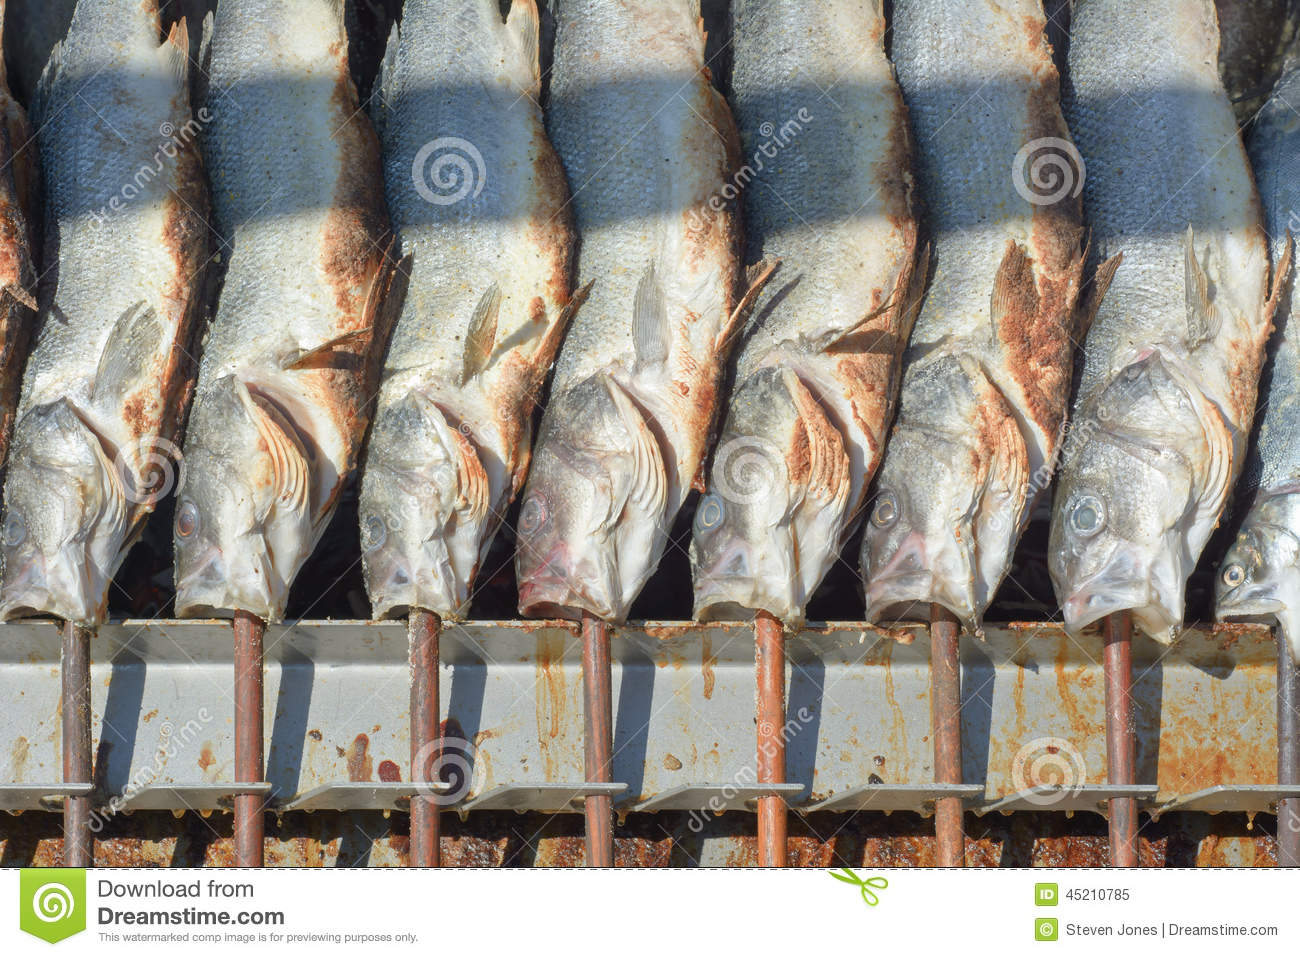 Grilled fish on a stick stock photo image 45210785 for Fish on a stick